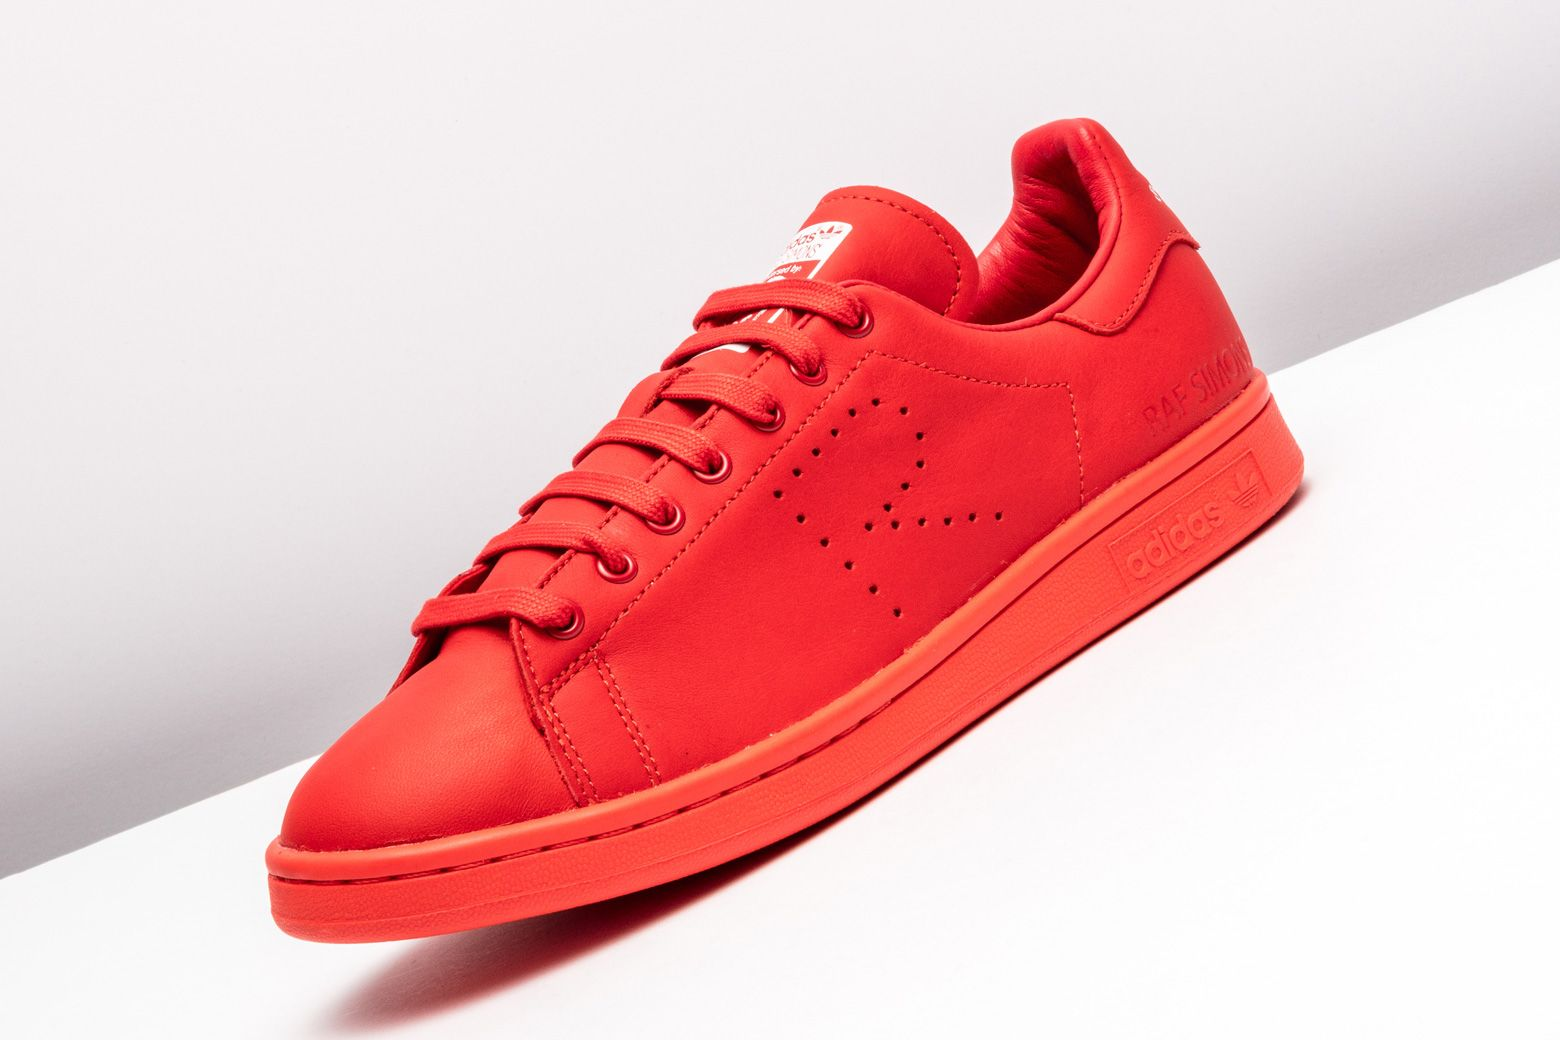 758faa4bc3d5 The Raf Simons edition adidas Stan Smith receives a head-turning tonal red  colorway.